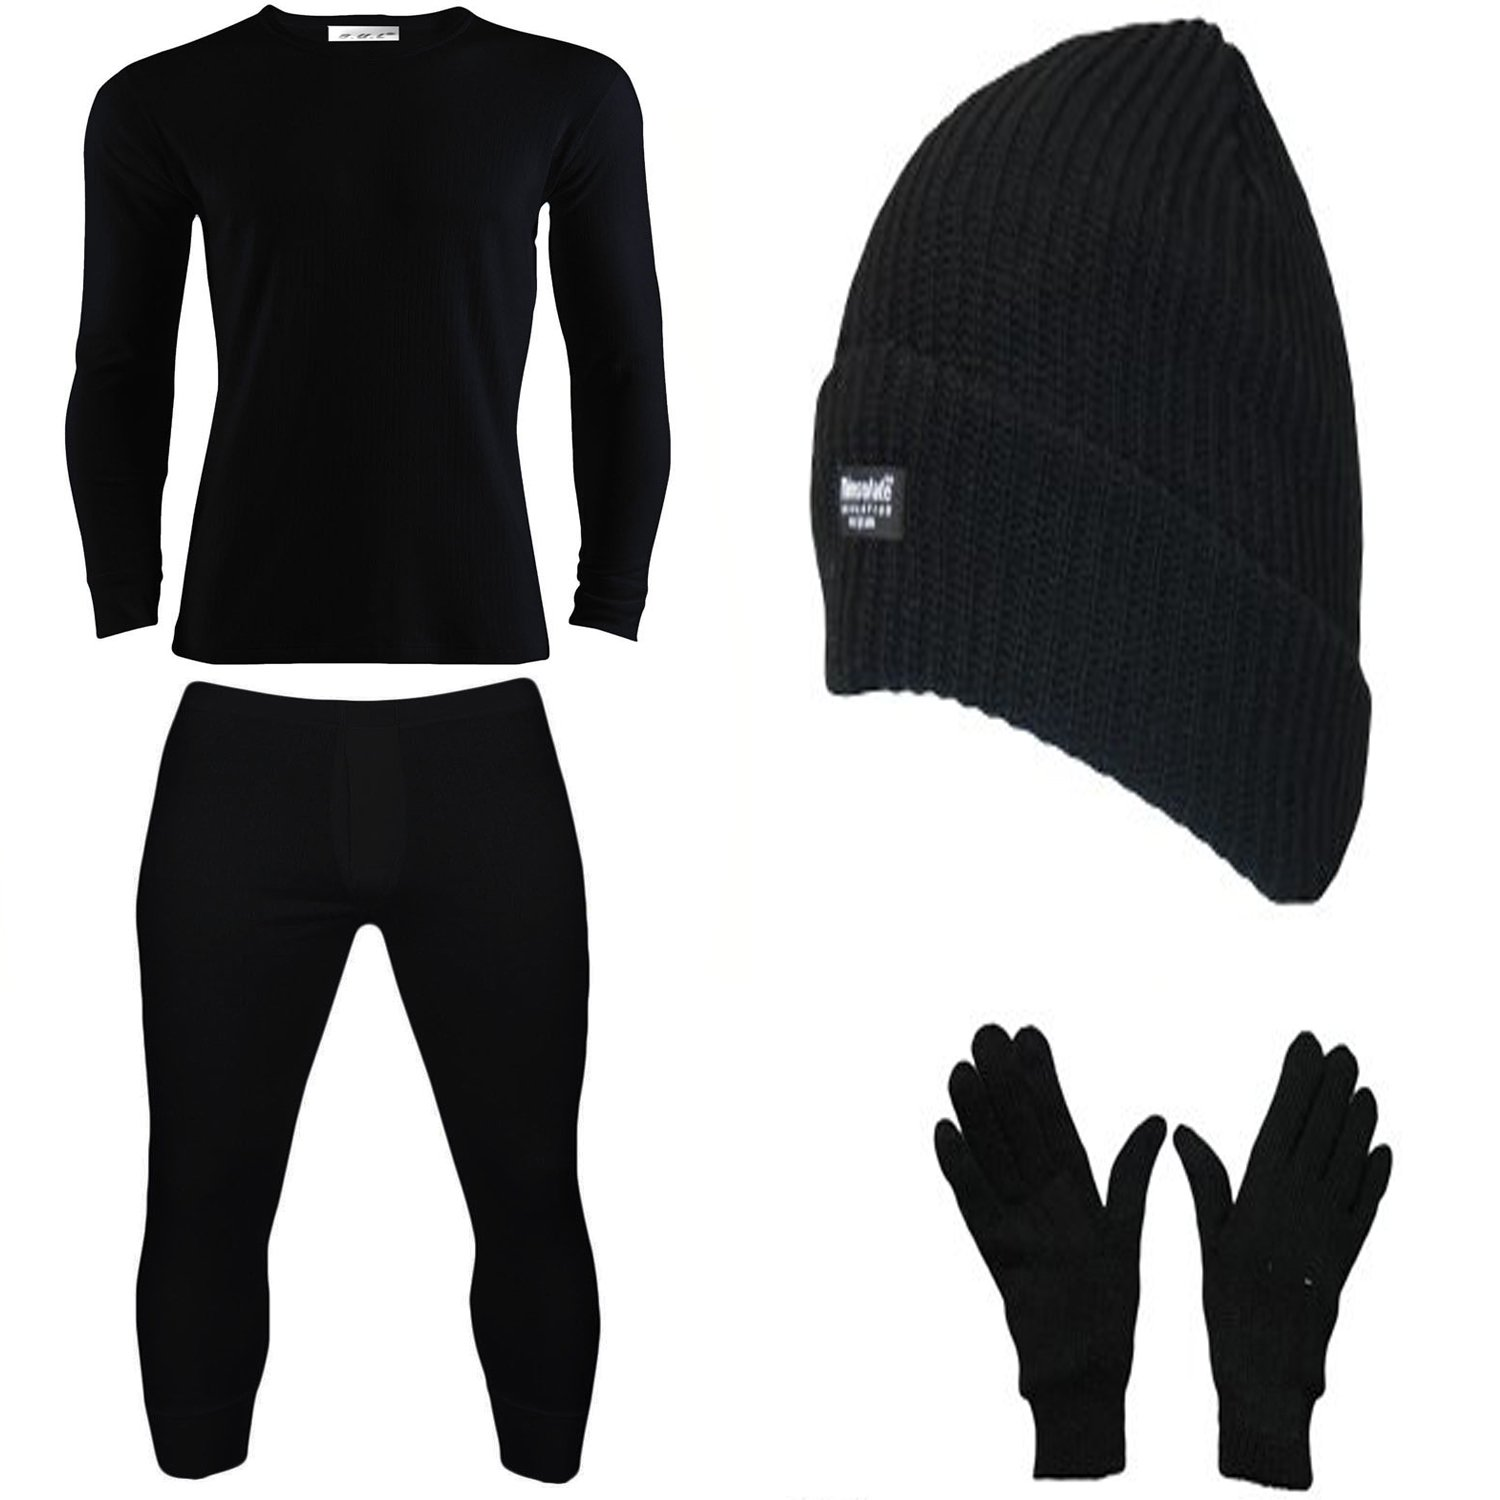 Mens Hot Thermal Underwear Set Long Sleeve Vest & Long Johns with Hat Glove Suitable for Winter, Outdoor Work, Travel, Camping & Ski Wear Size S-XXL